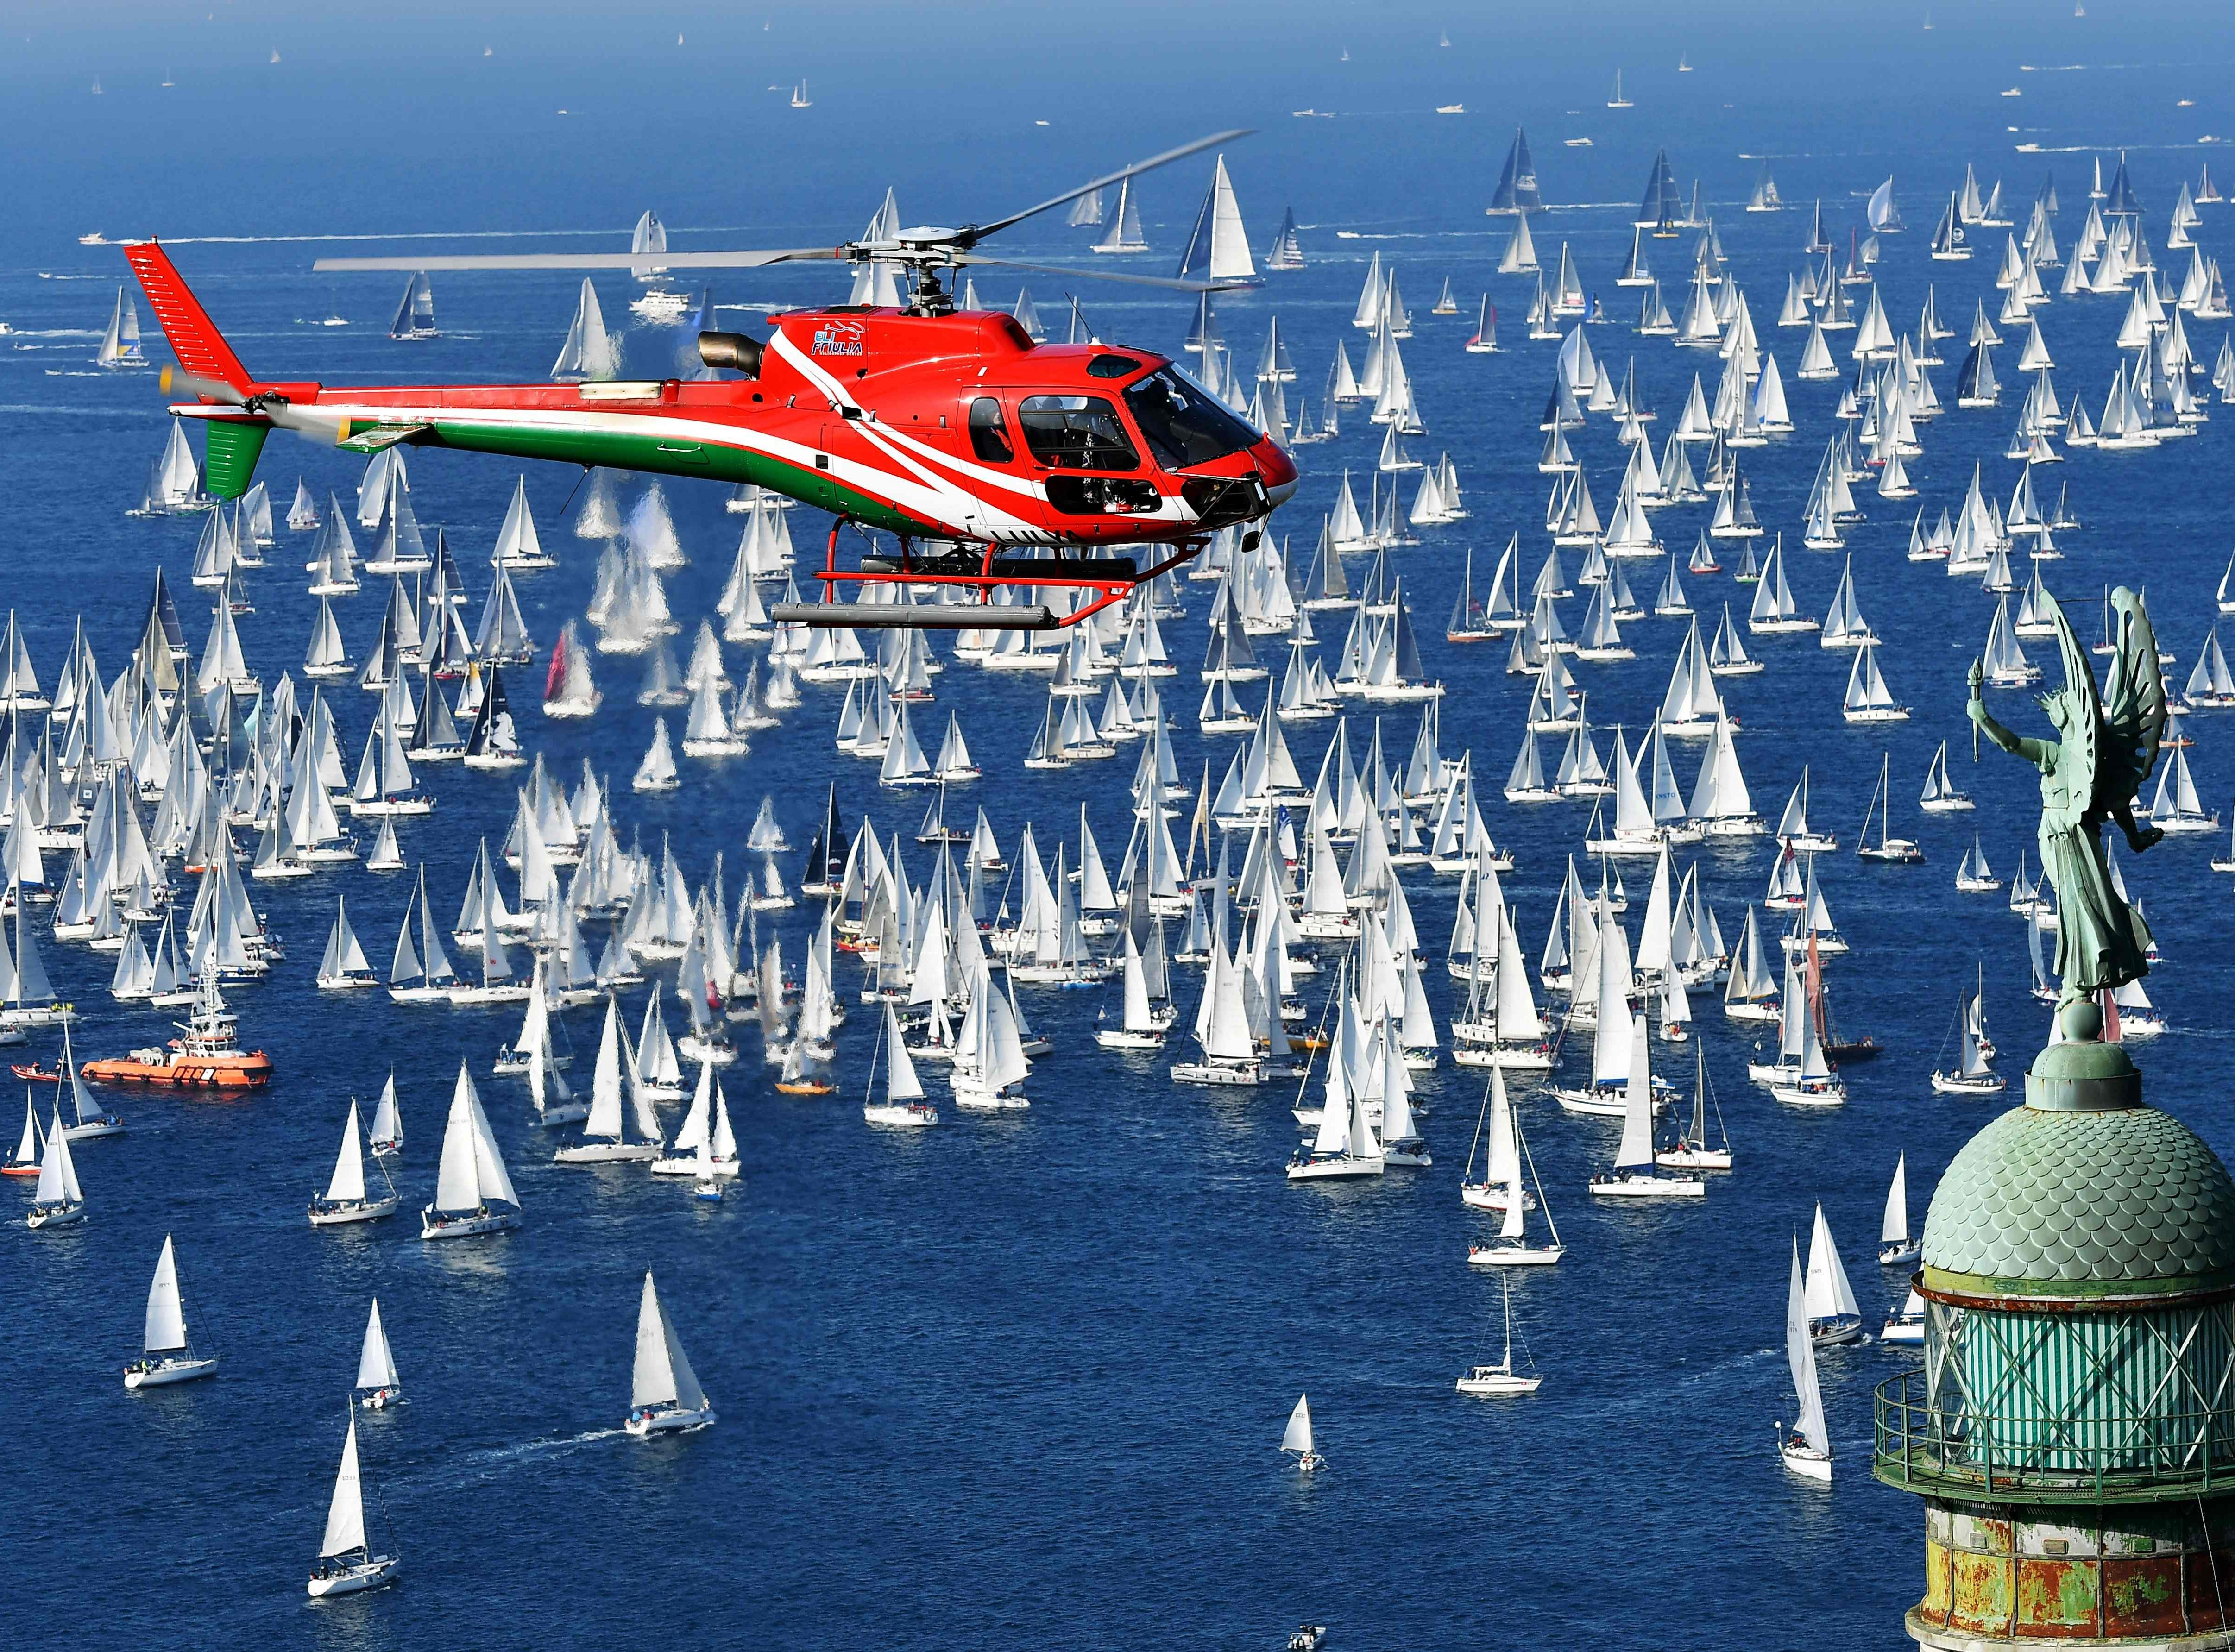 """Boats sail past the """"Victory Lighthouse"""" during the 50th Barcolana regatta in the Gulf of Trieste on Oct. 14, 2018. With some 2700 vessels, The Barcolana, has the most particpants of any sailing regatta in the world."""